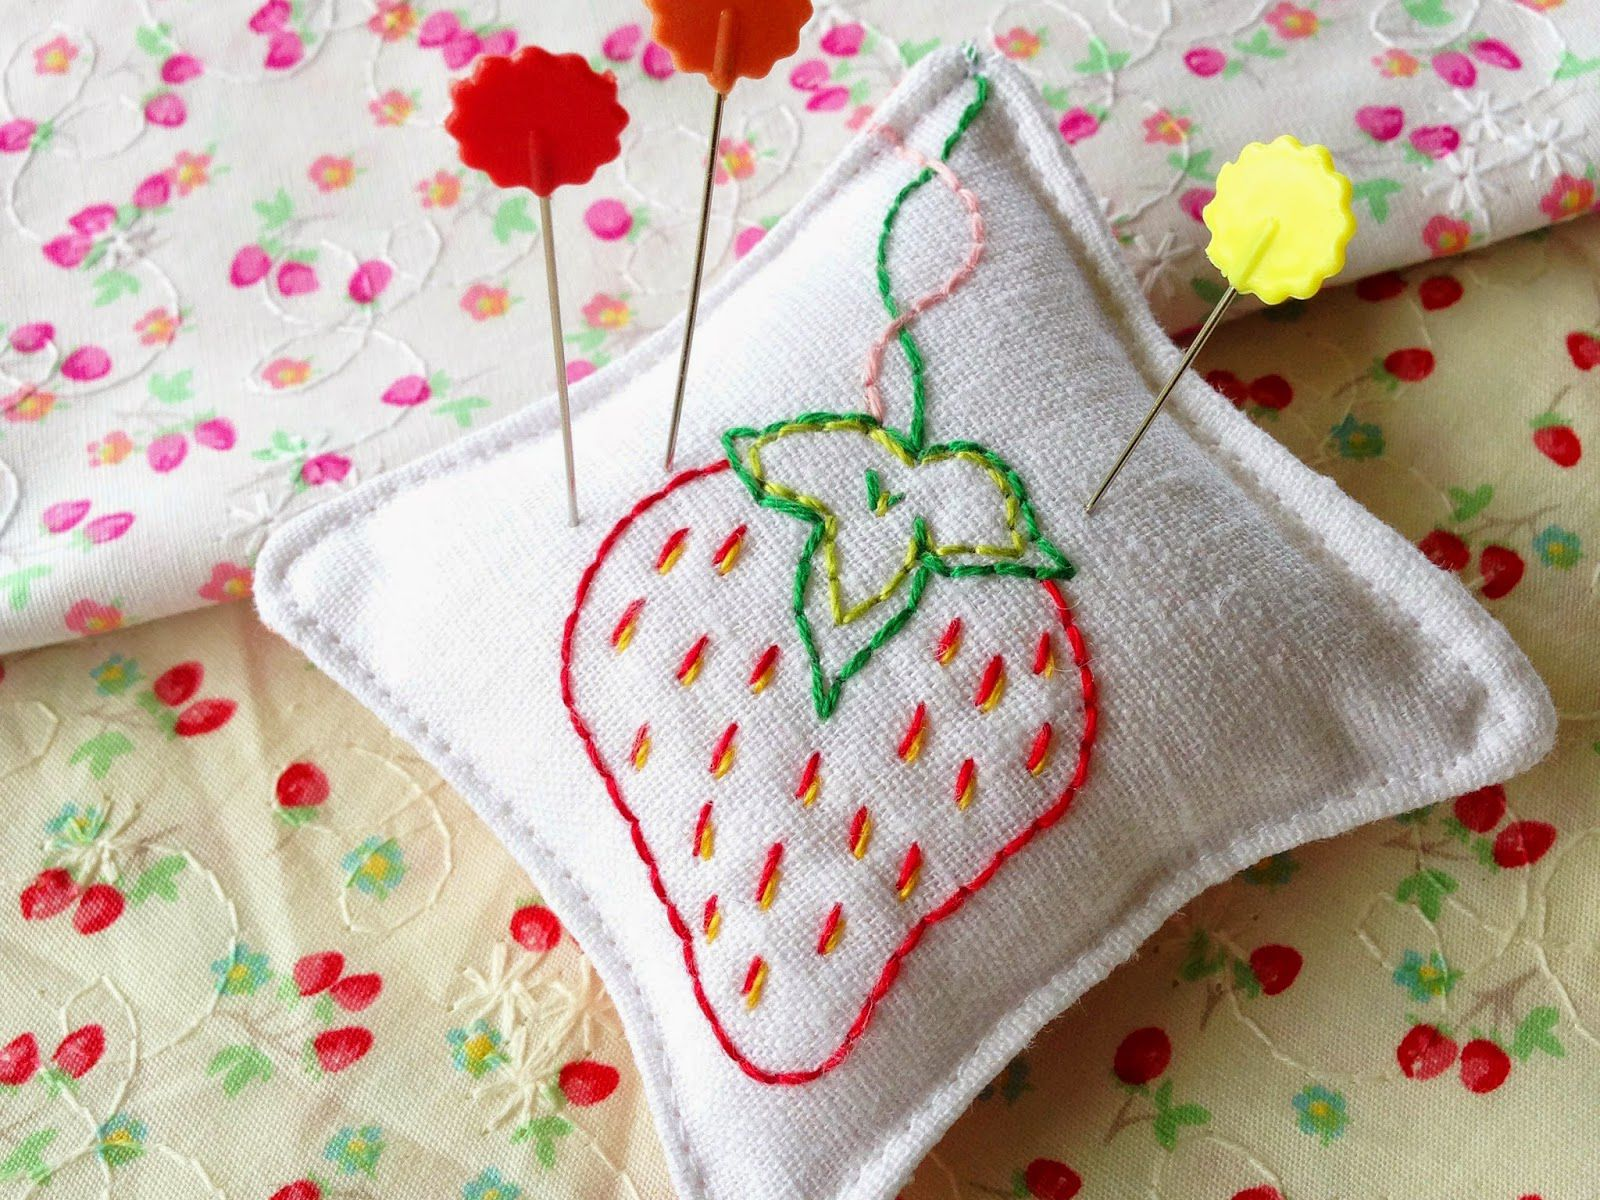 10 Free Embroidery Patterns For Beginners